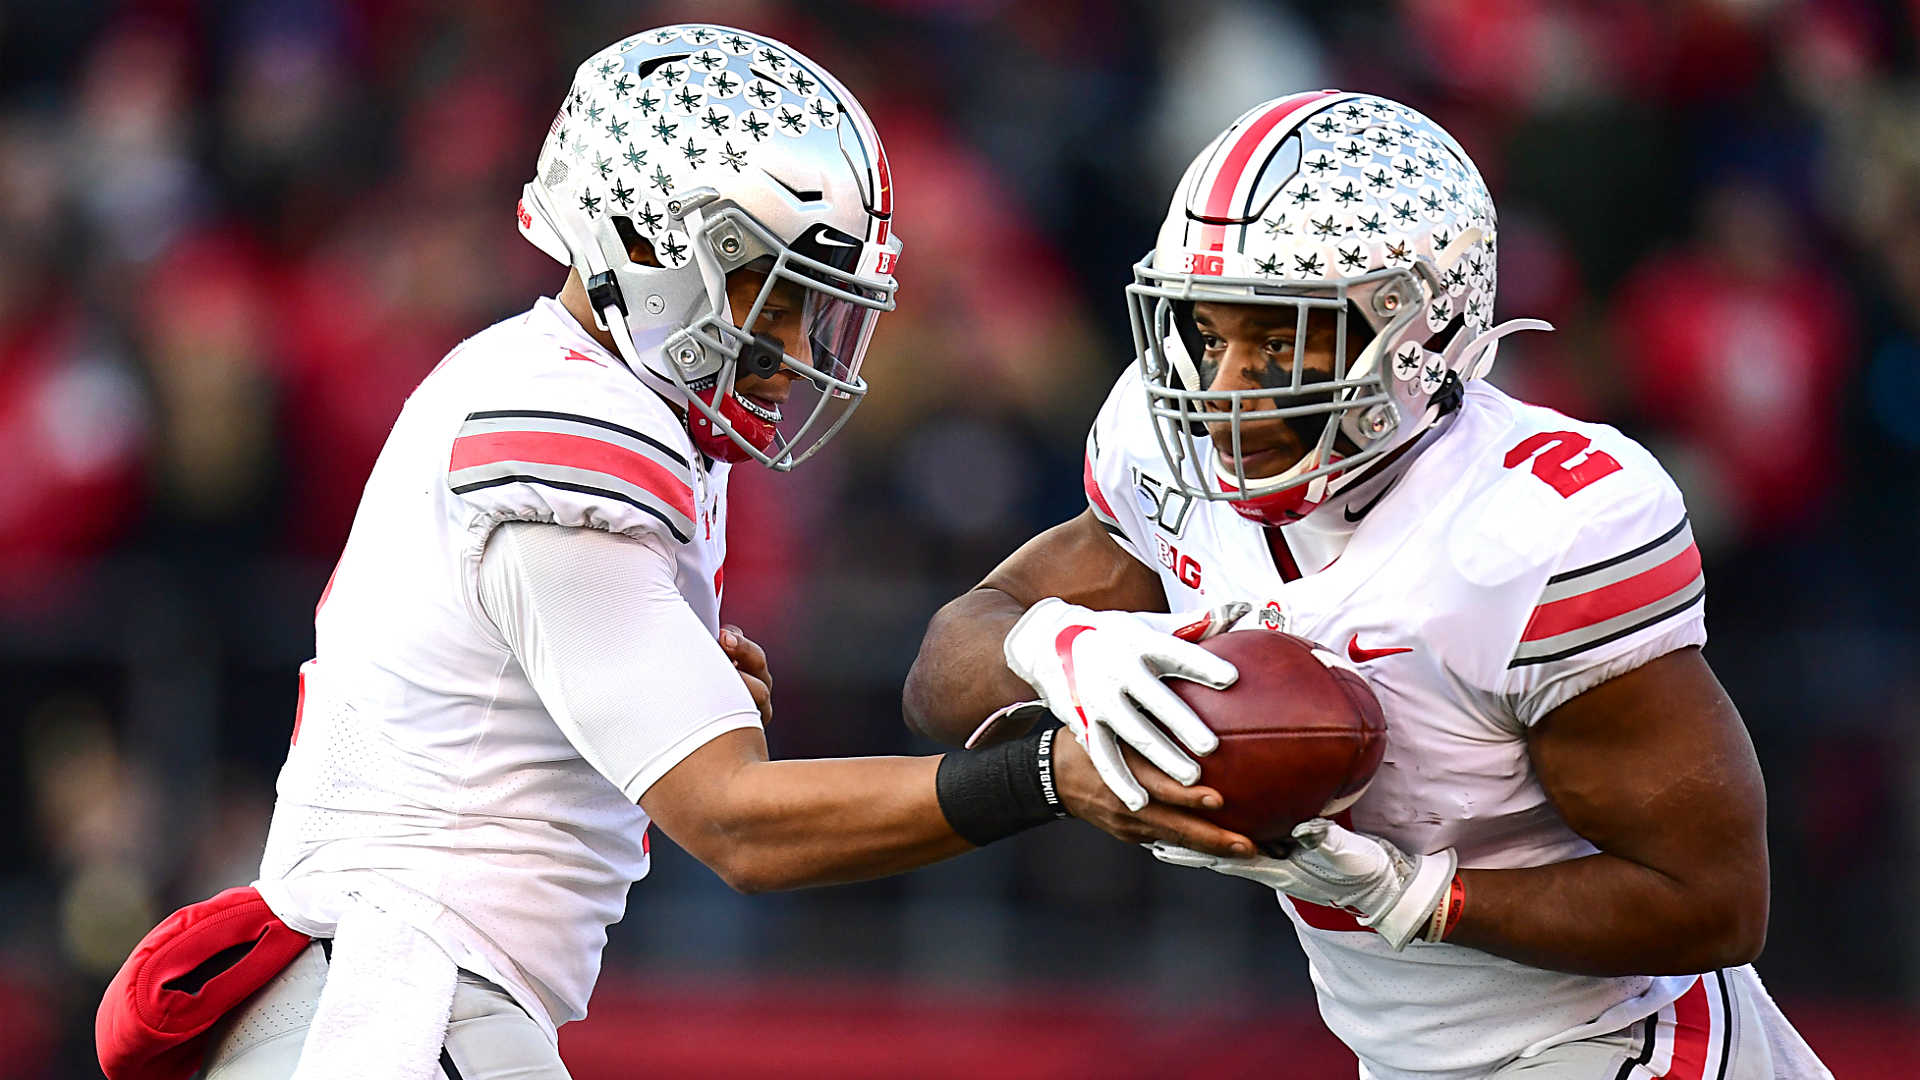 35+ College Football Scores Today Images